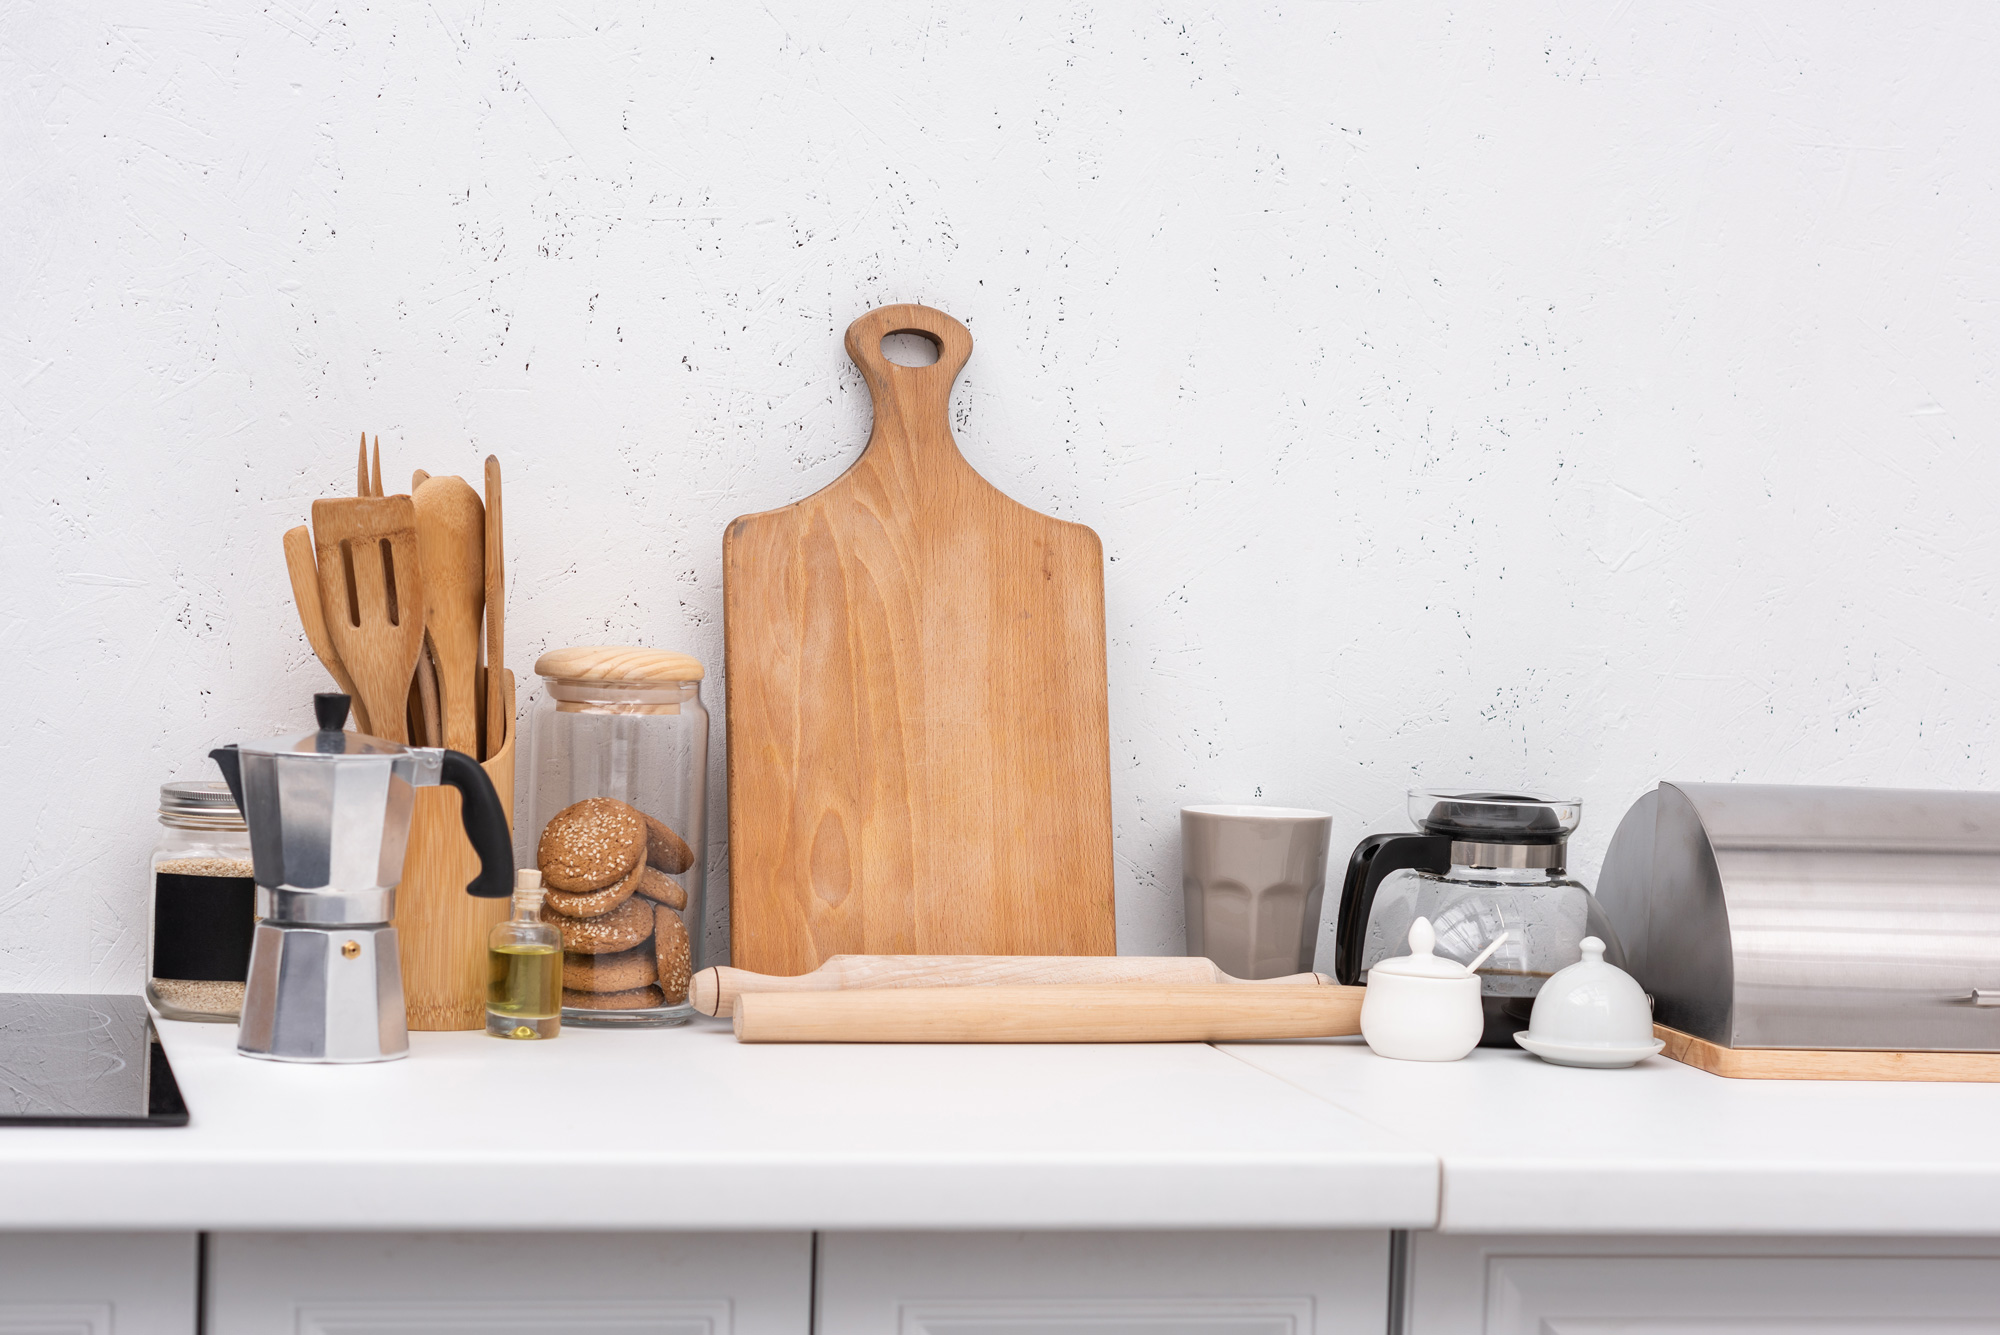 wooden kitchenware on table